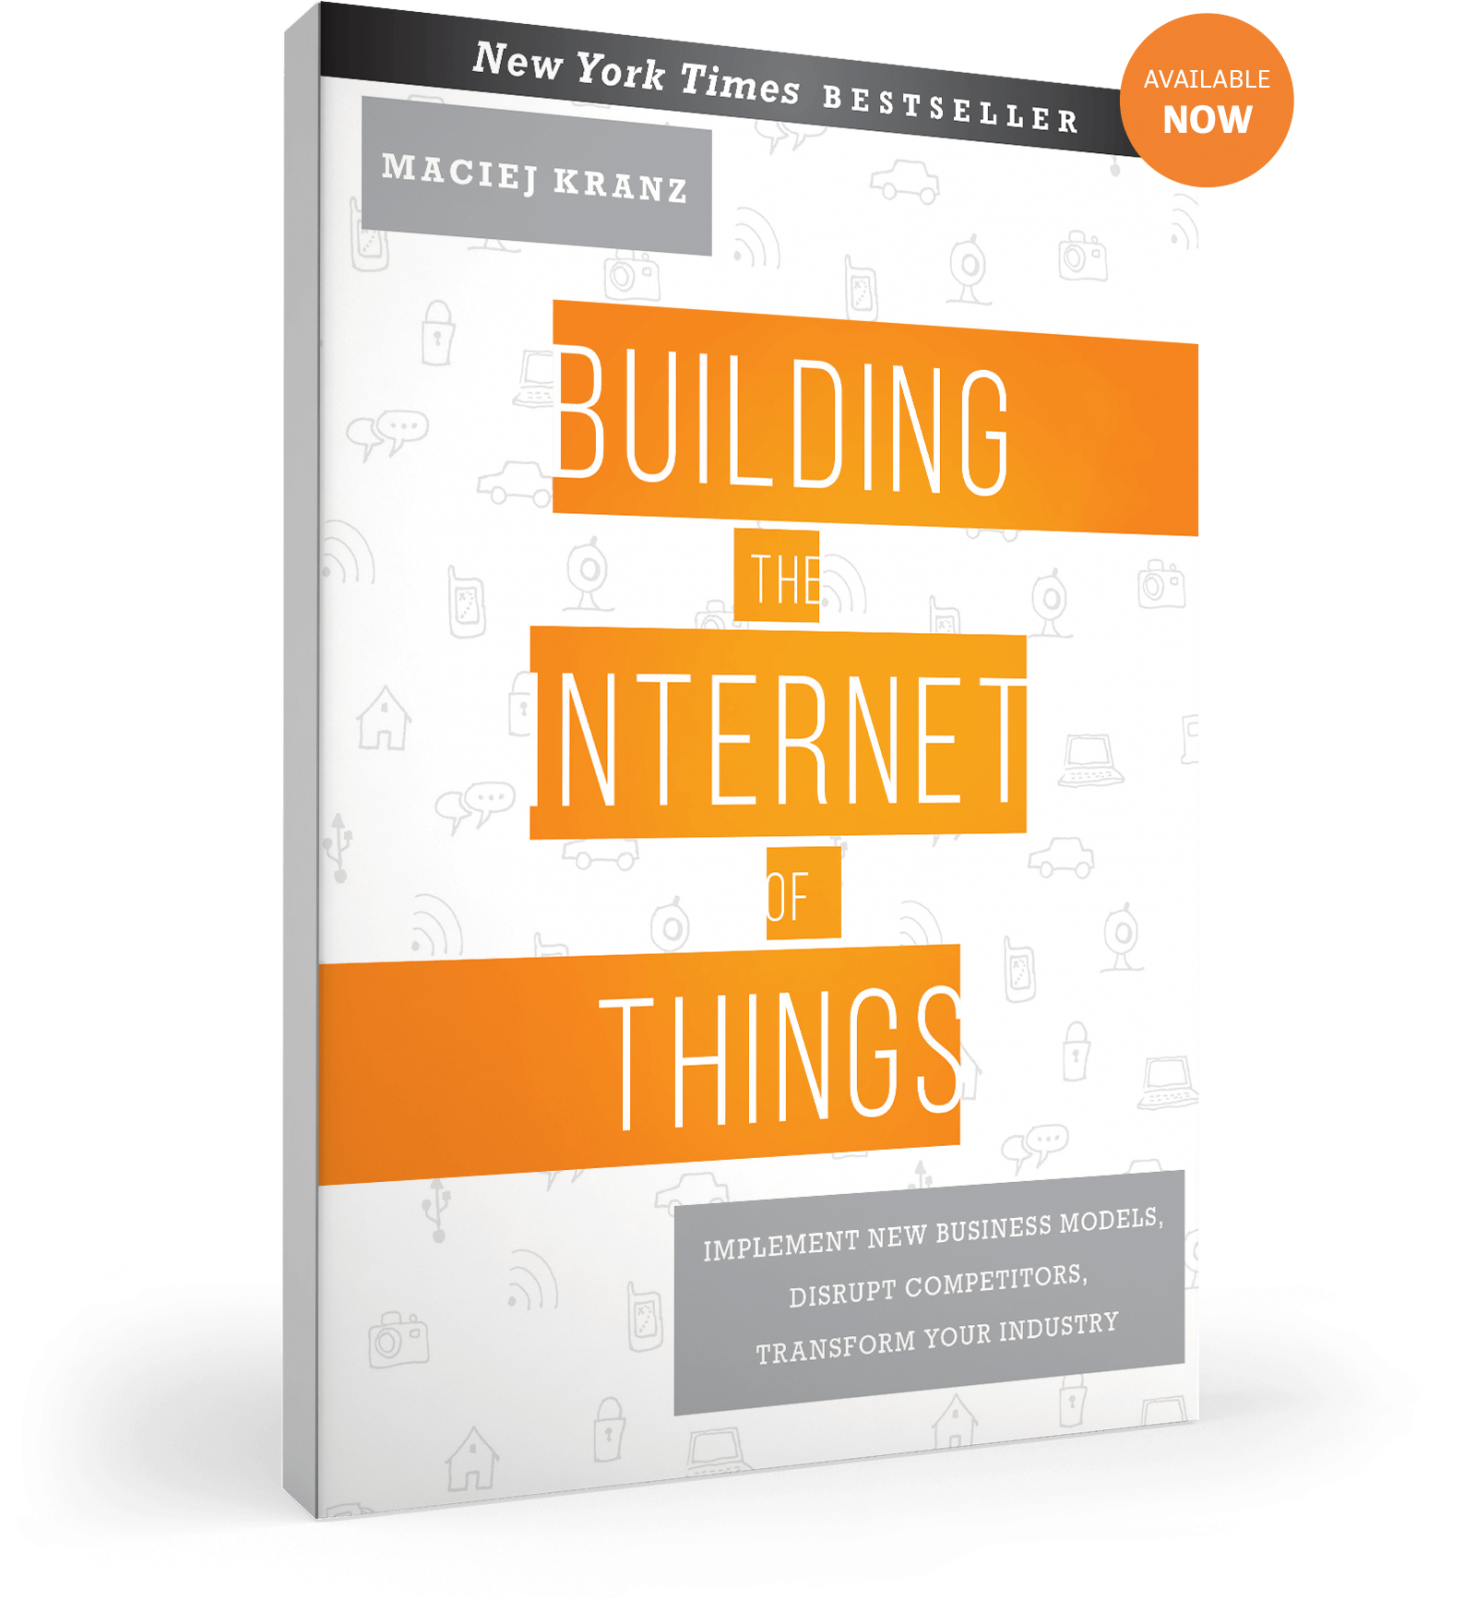 Building the Internet of Things